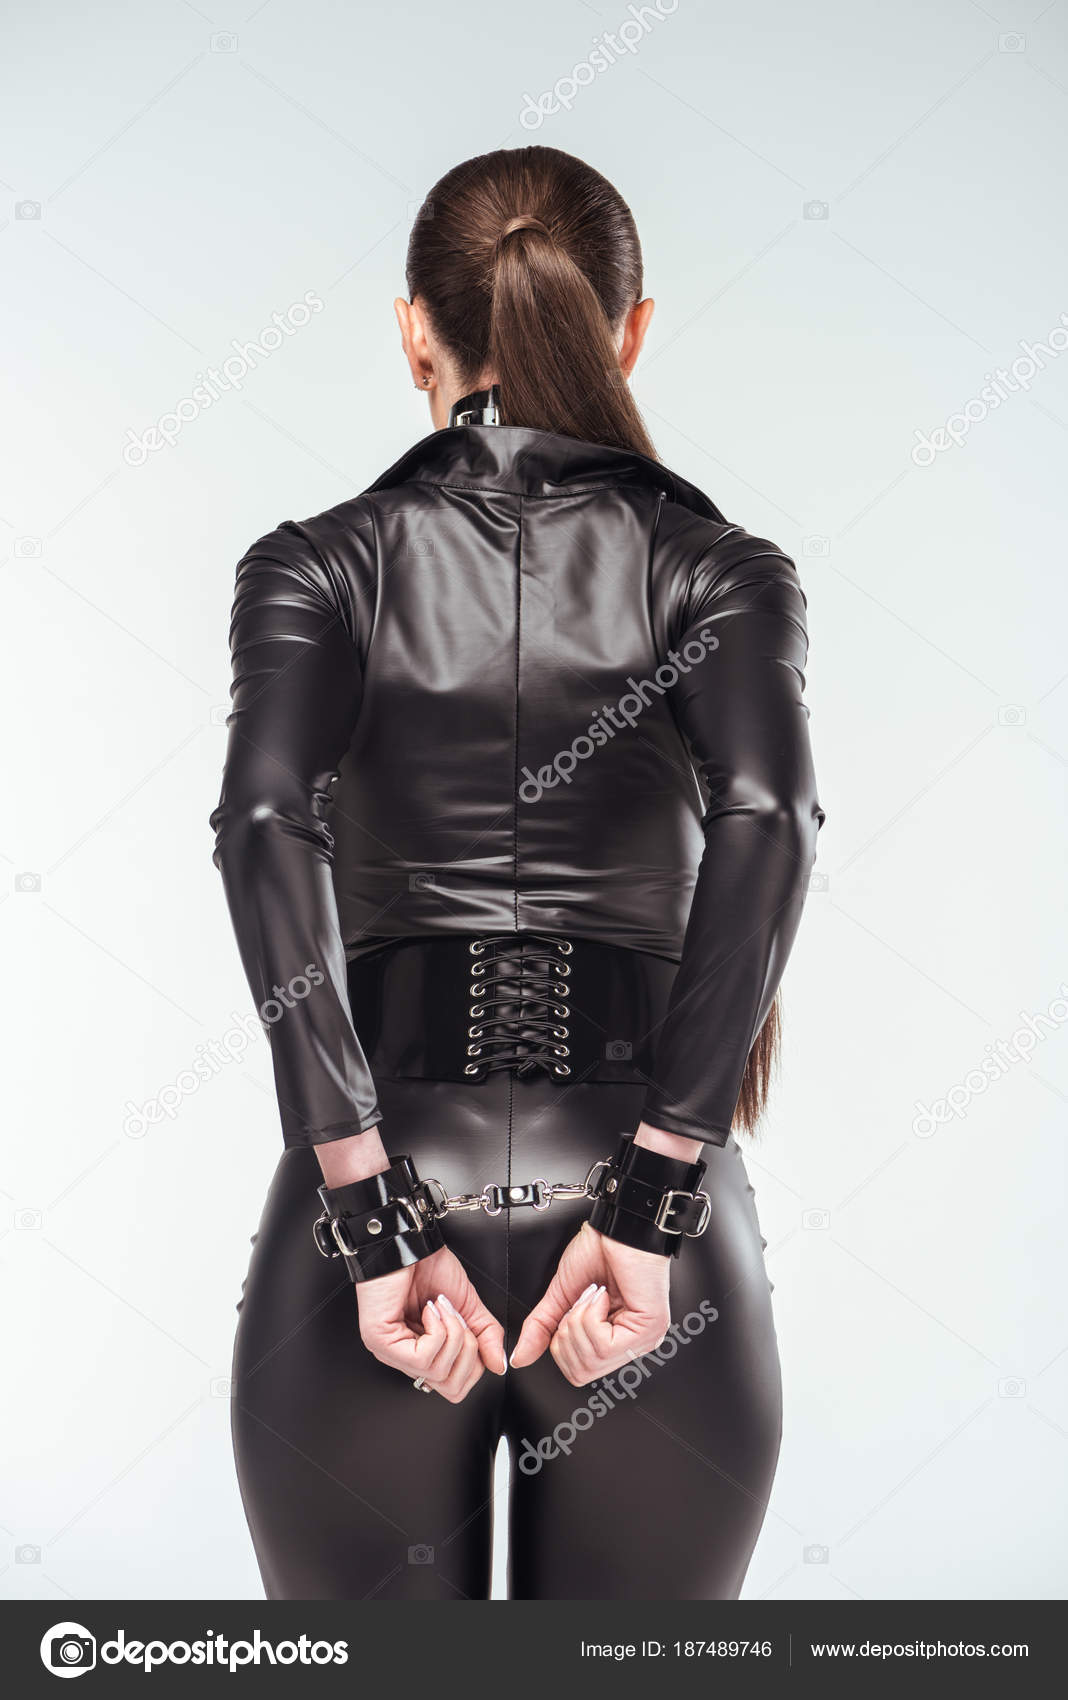 Hot girls in sexy leather